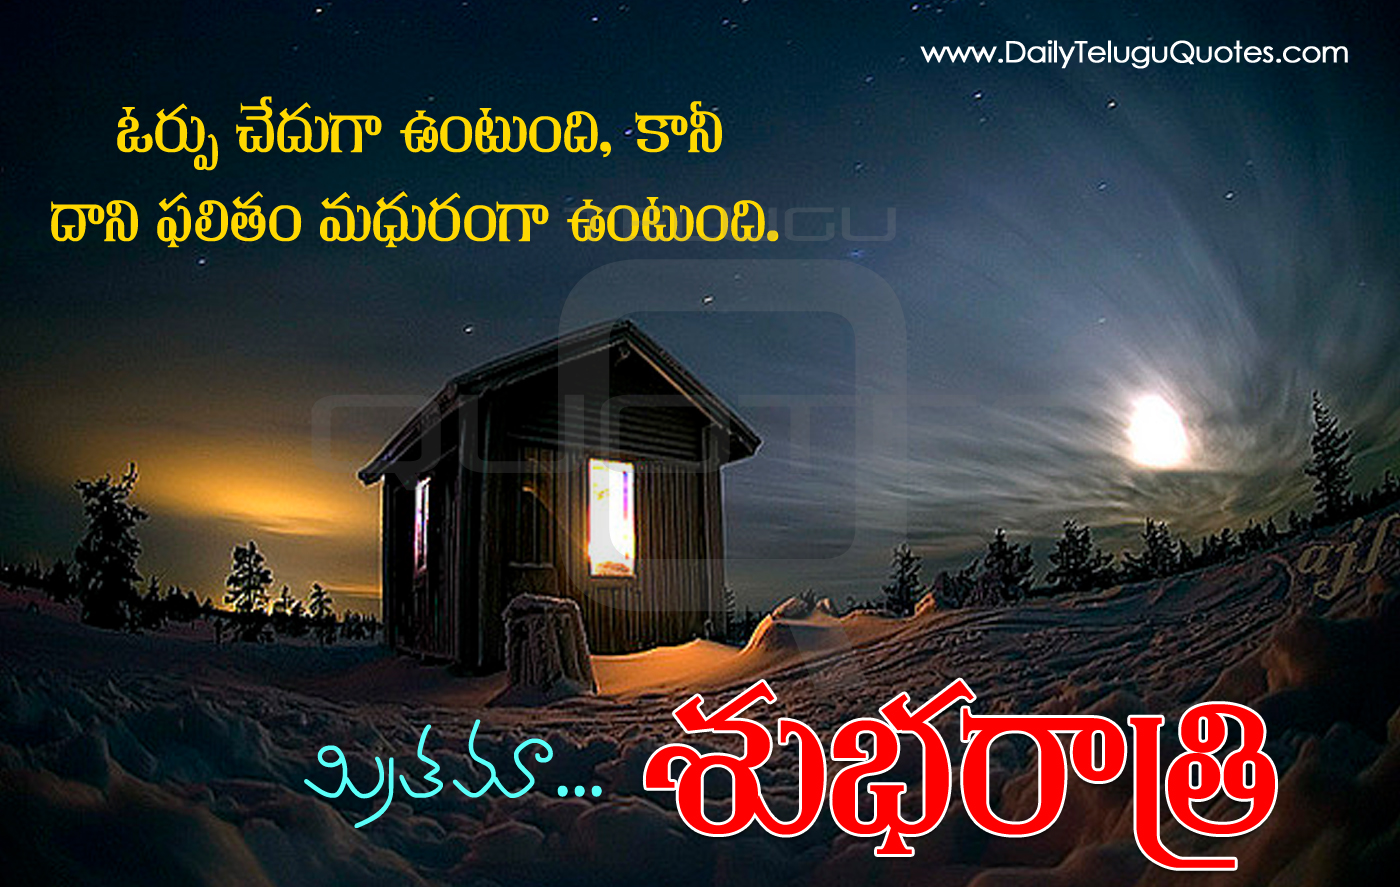 Unique Good Night Images Telugu Top Colection For Greeting And